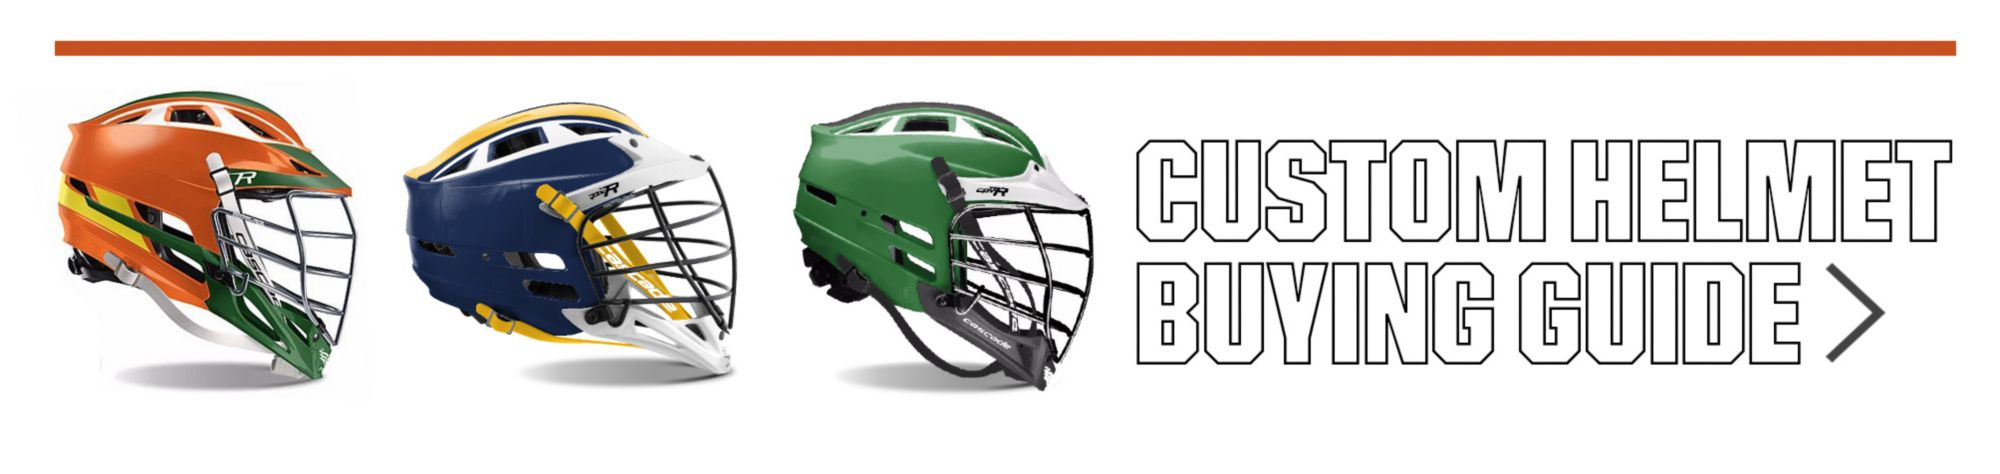 Custom Lacrosse Helmet Buying Guide - Learn More